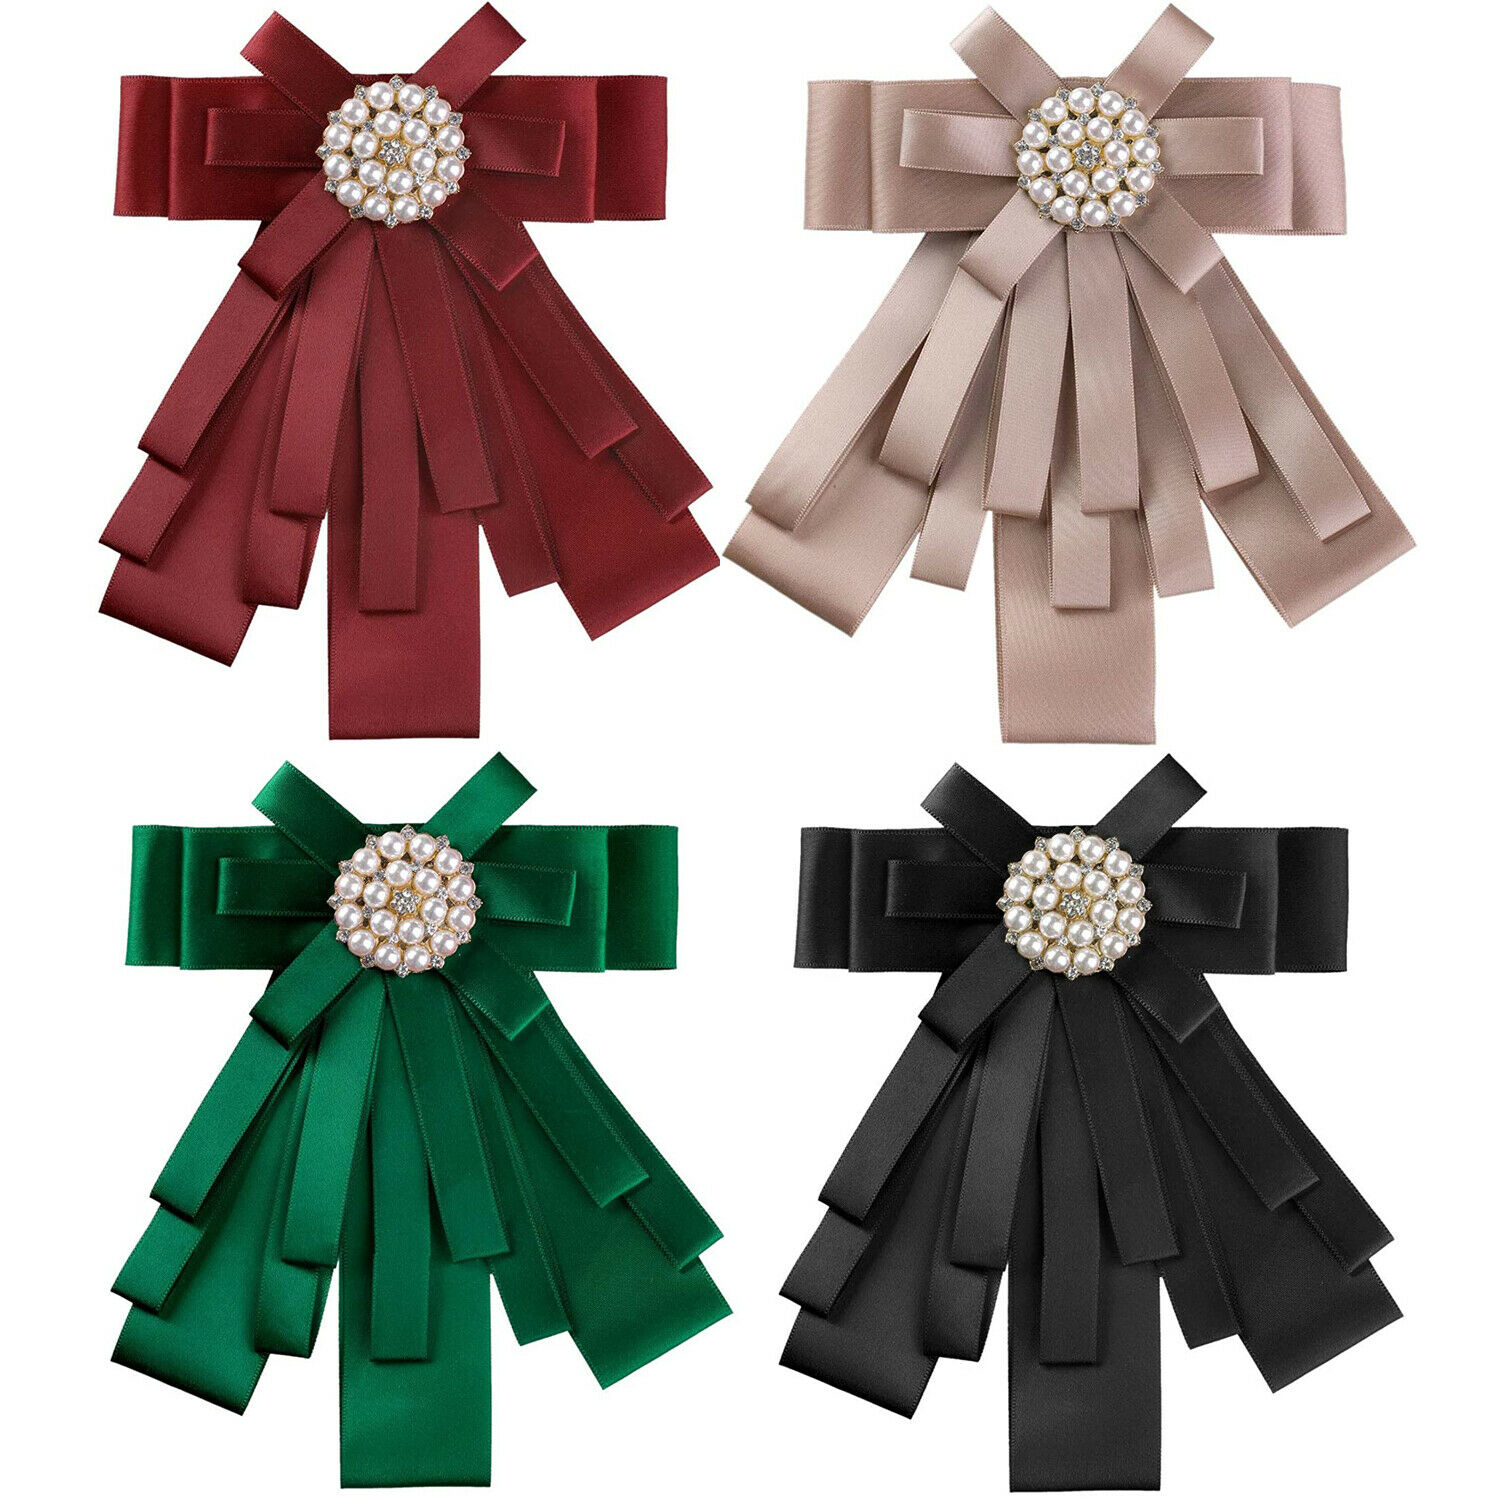 Beads Rhinestone Pre-Tied Ribbon Brooch Bow Tie Pin Collar Bow for Women Girls